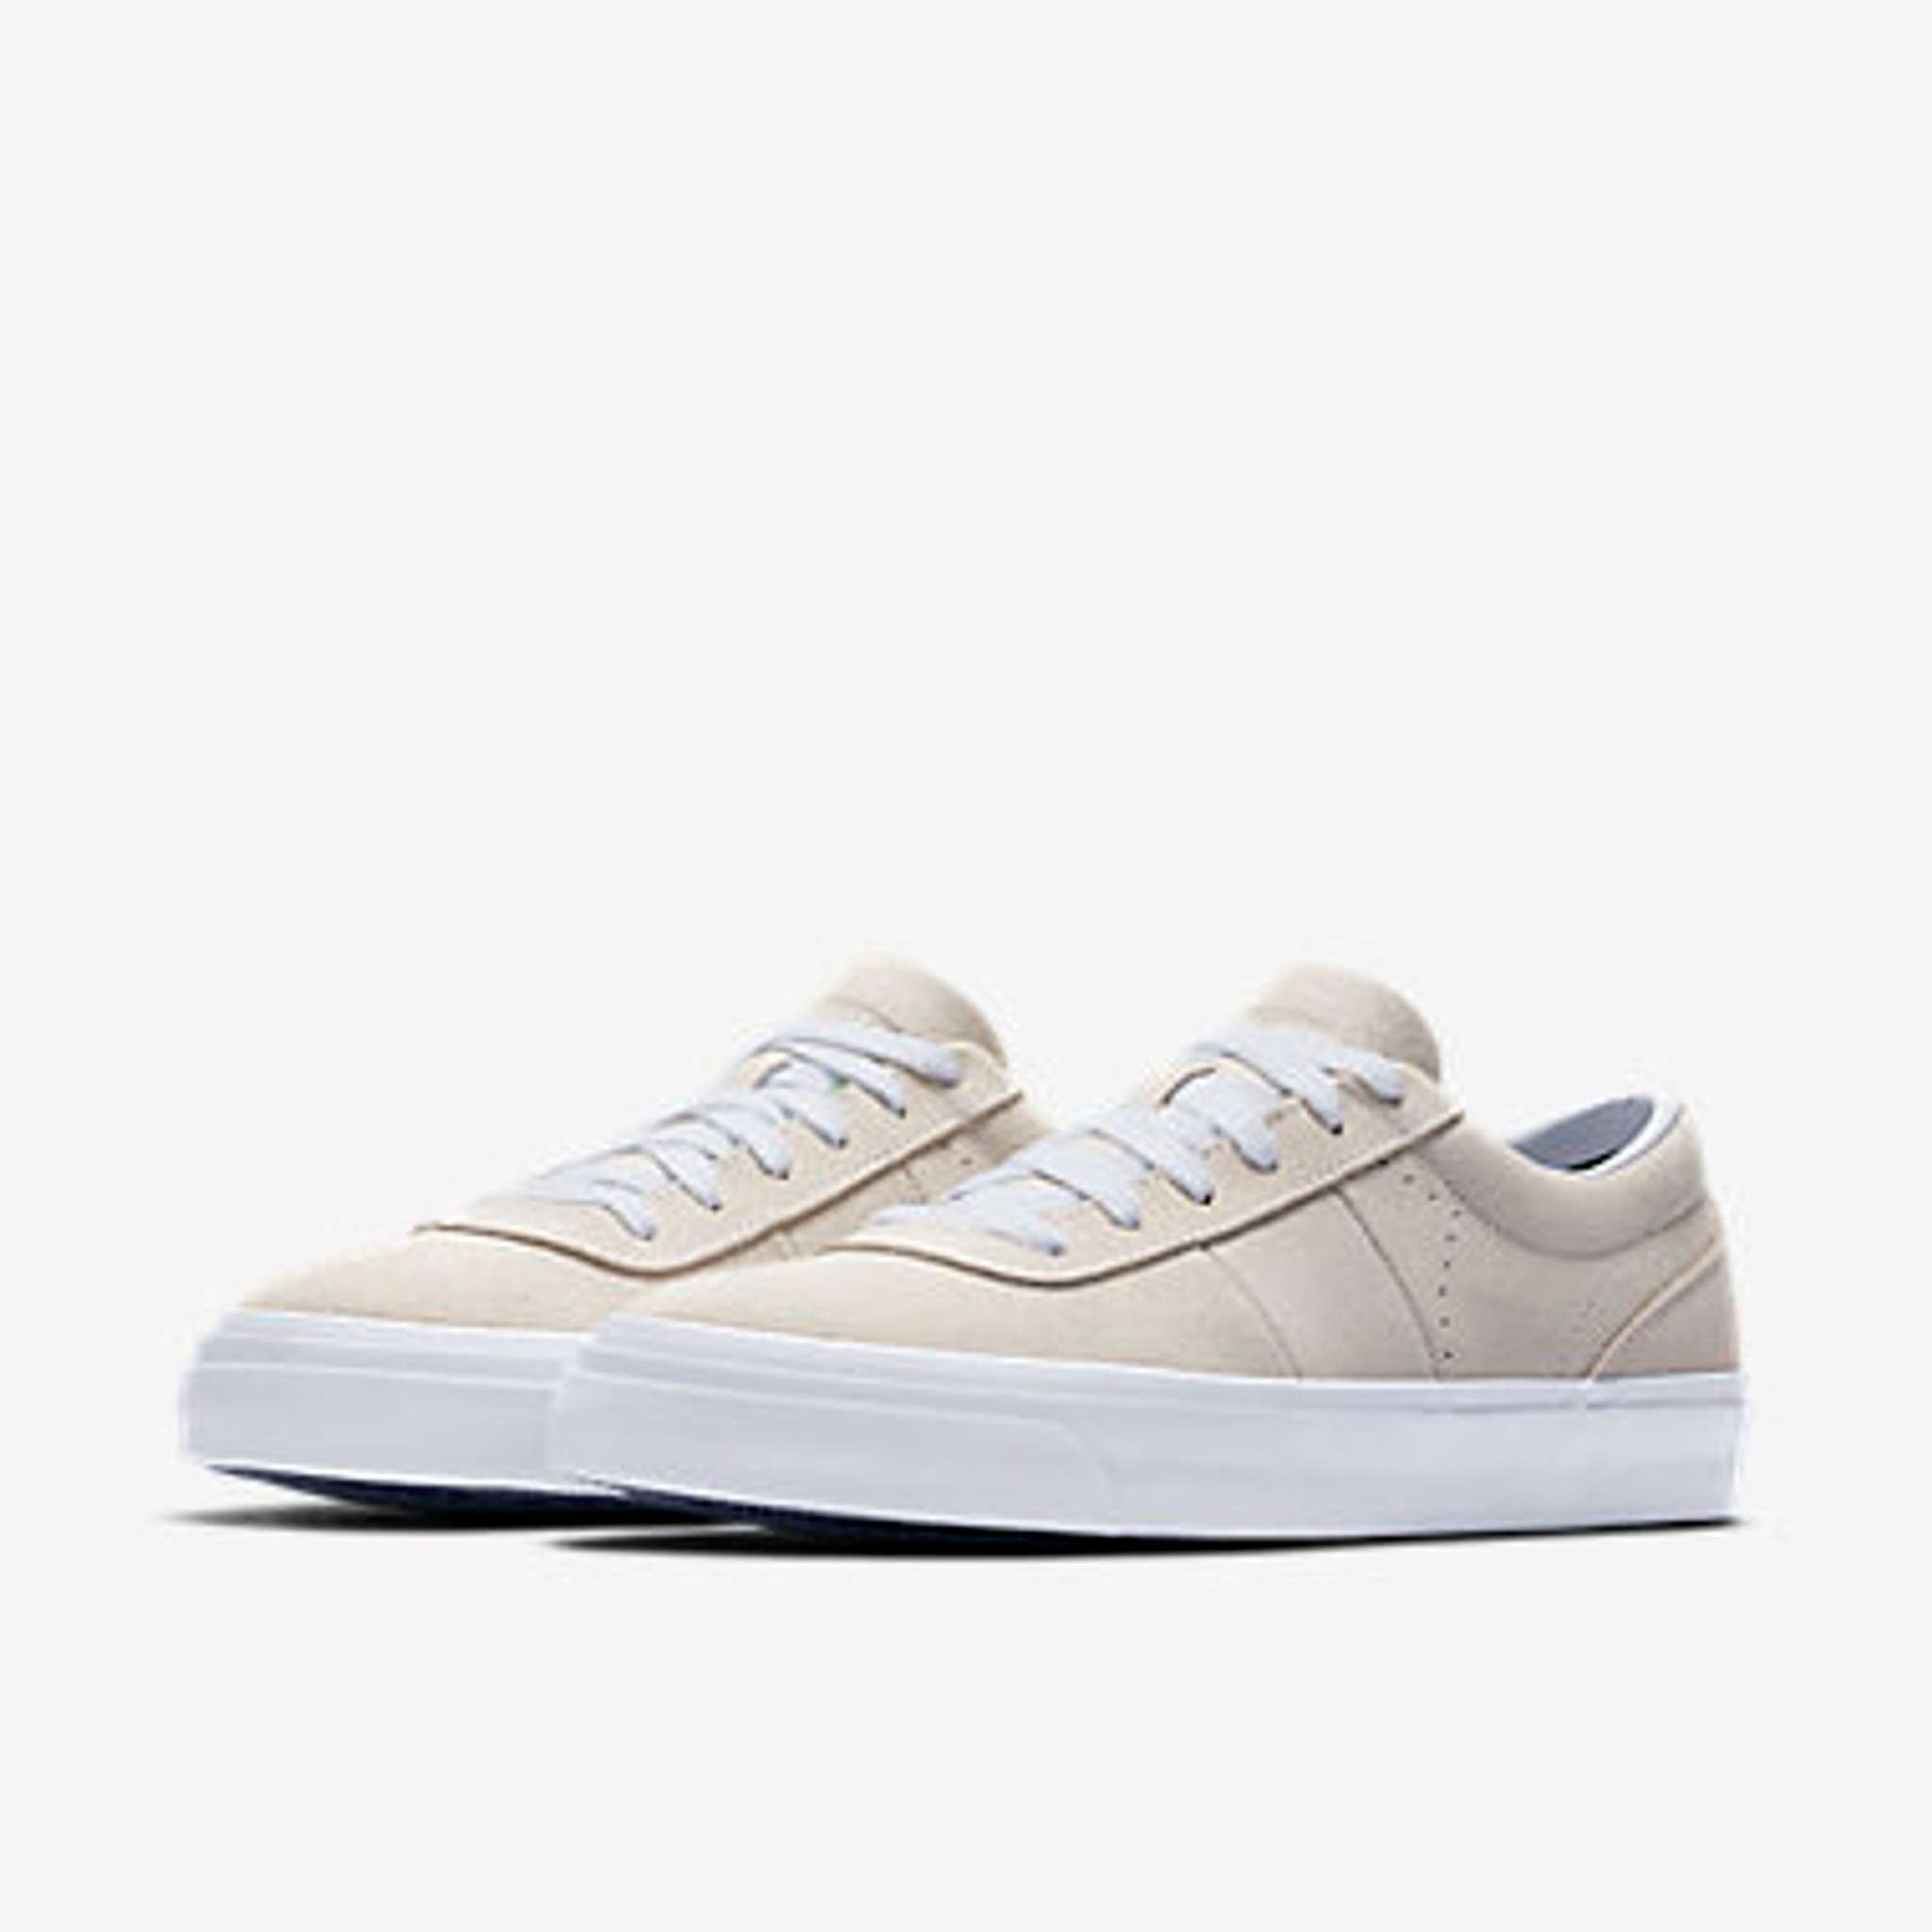 converse one star pro low